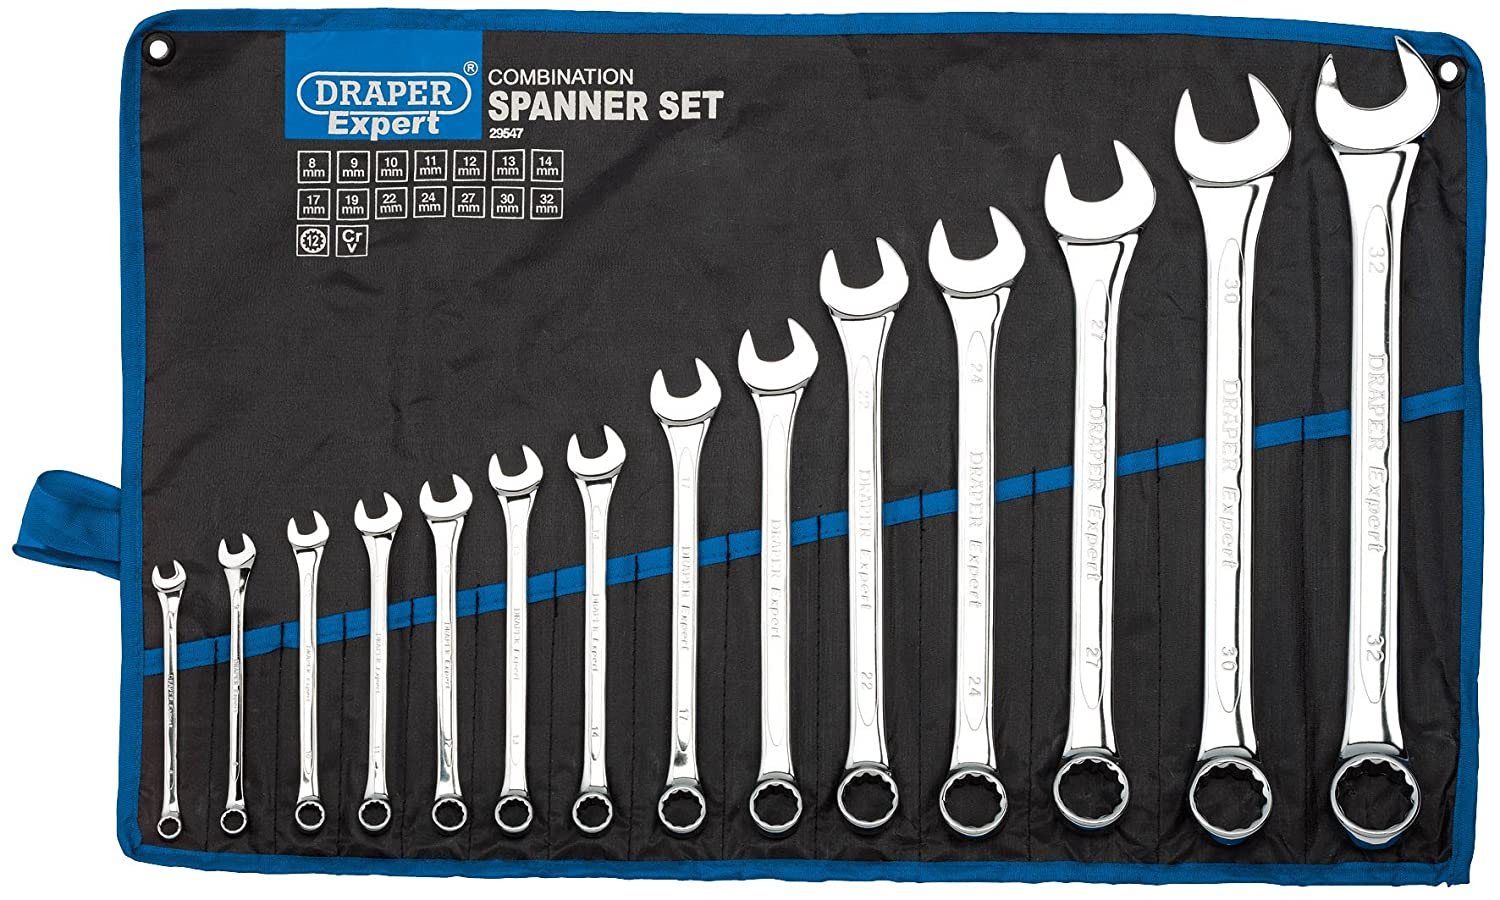 Free Delivery Draper 6 Piece Metric Combination Spanner Set